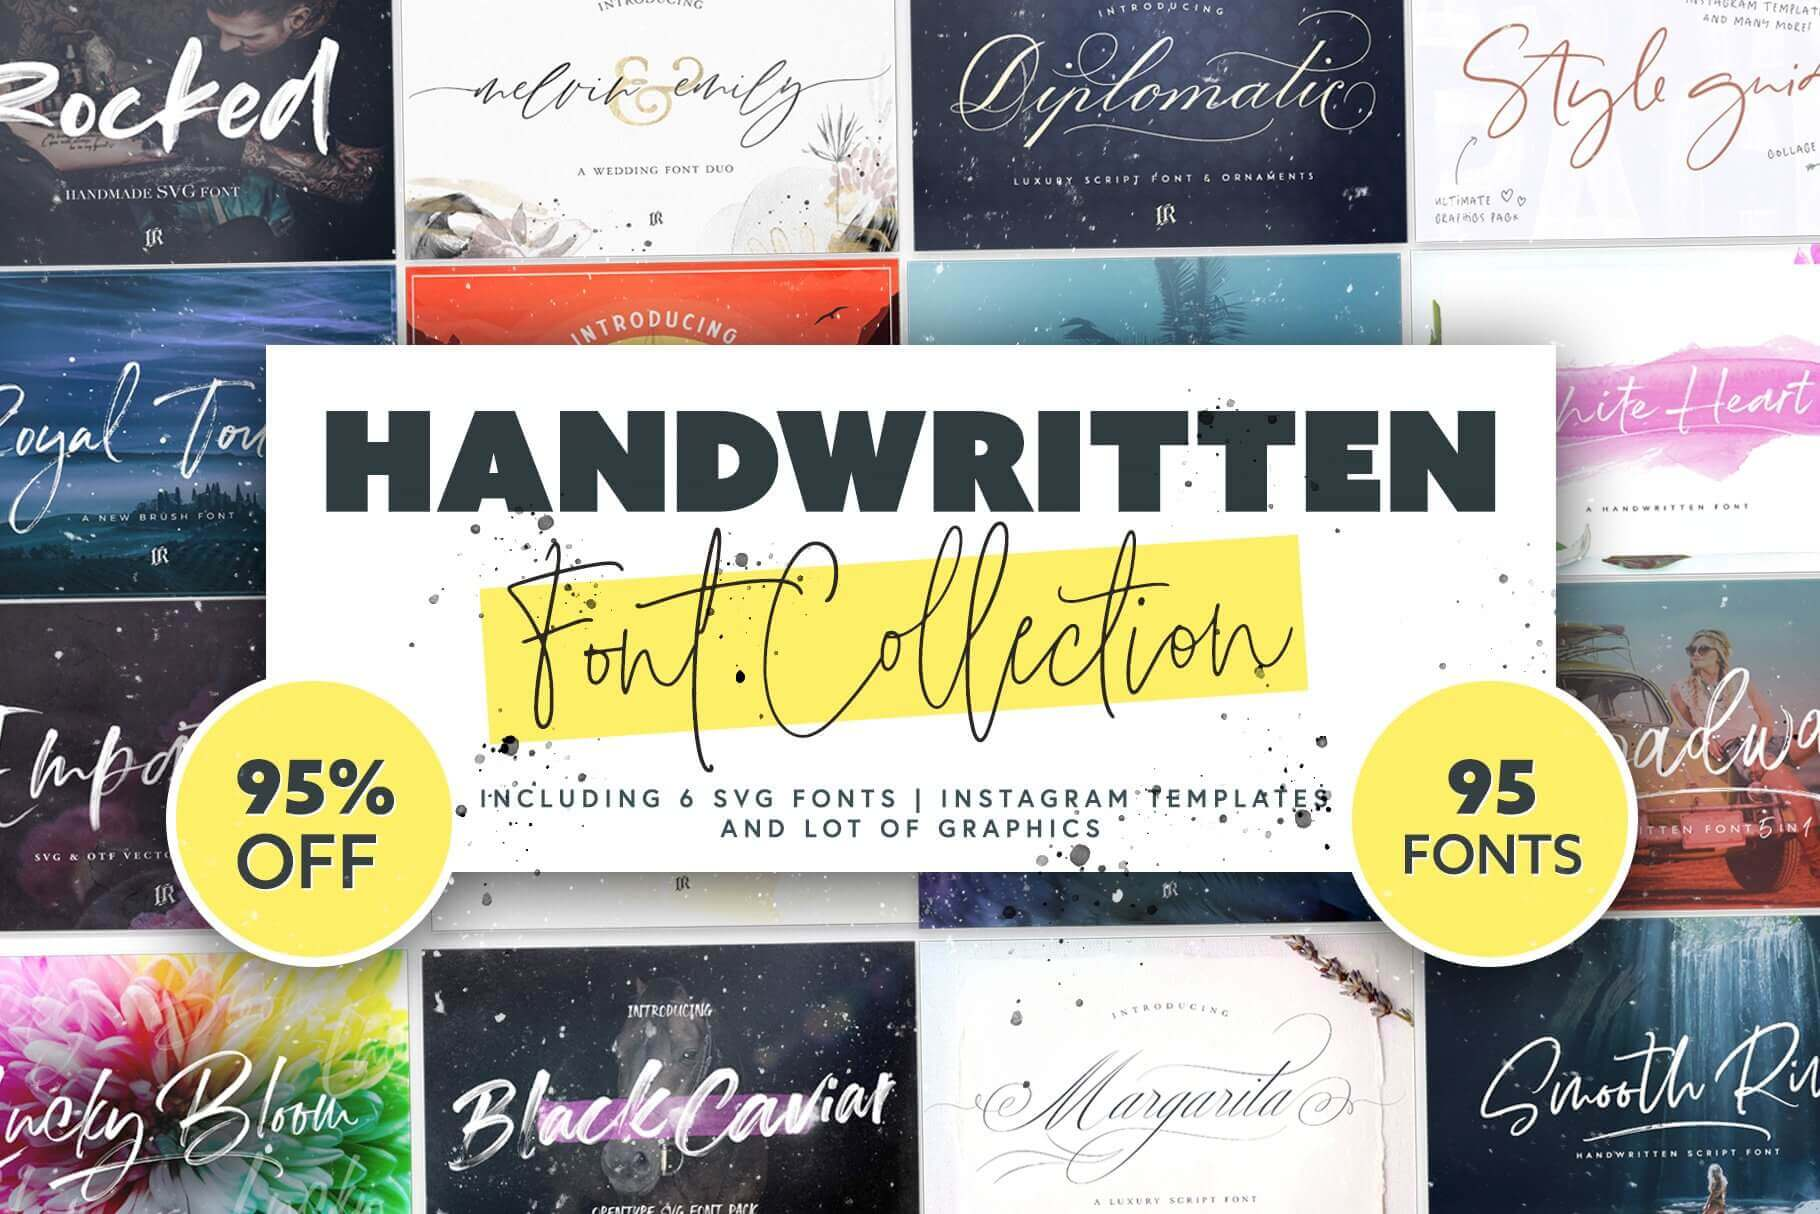 95 Handwritten Fonts, Instagram Templates & More